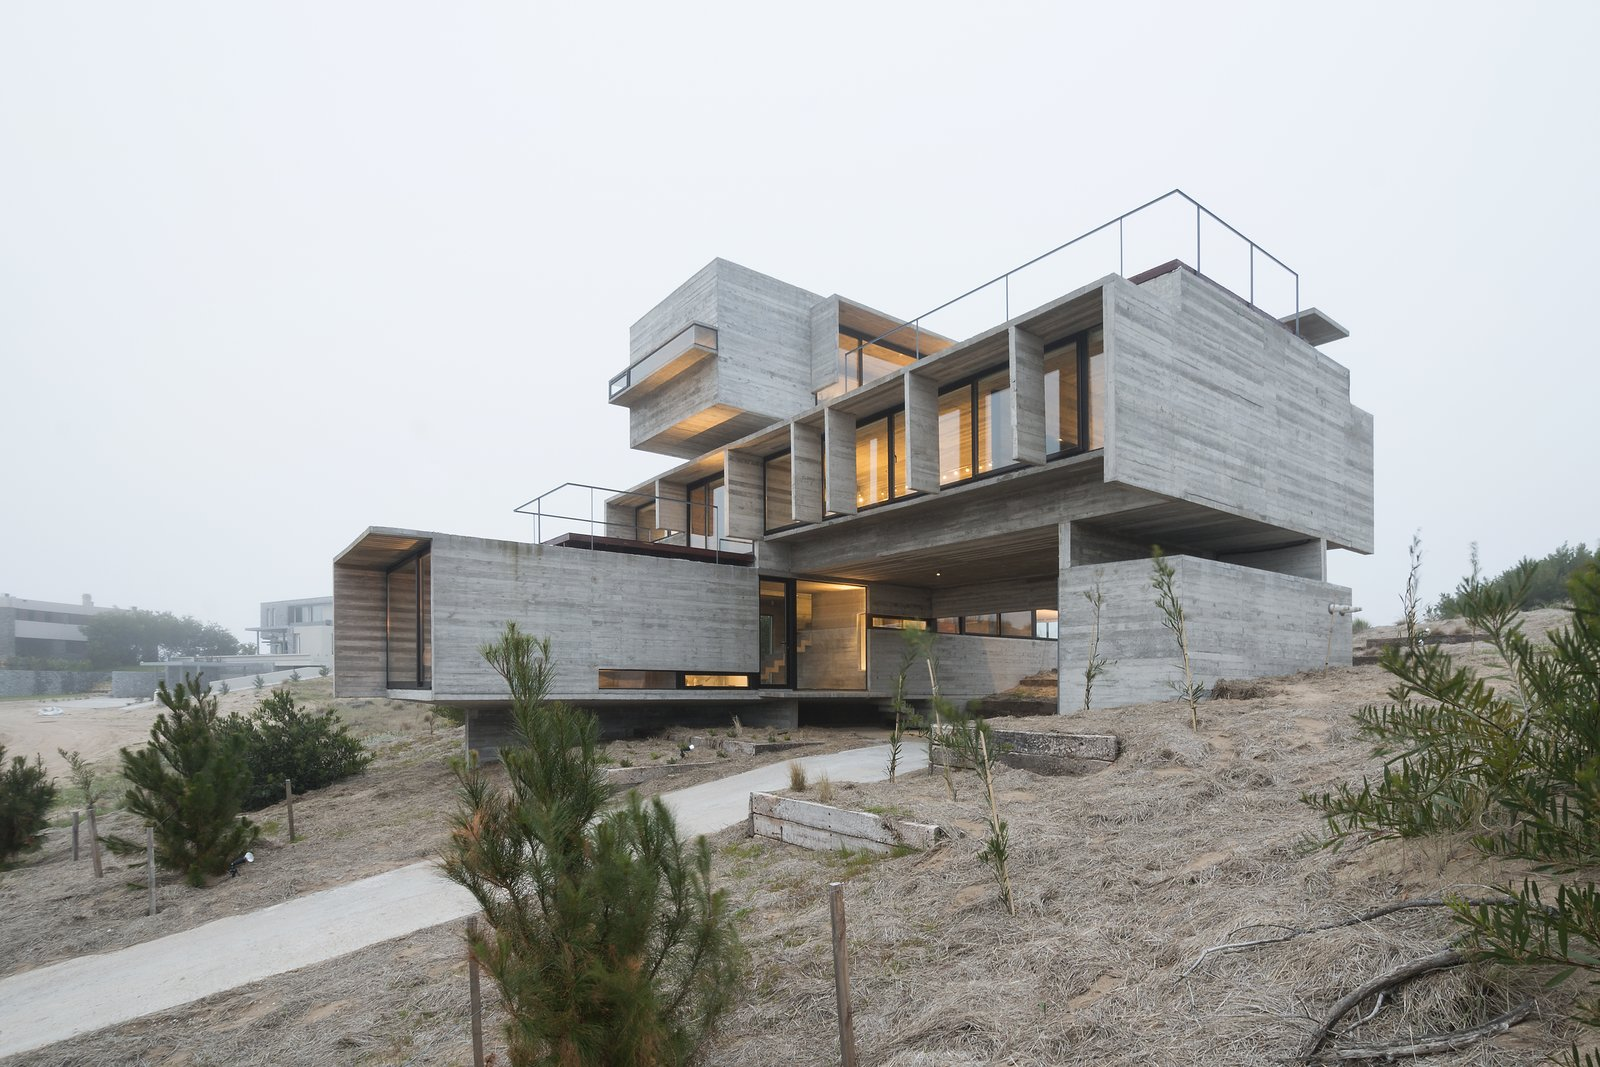 Daring volumetric distribution creates an intriguing, sculptural form. Tagged: Exterior, Concrete Siding Material, Butterfly RoofLine, Glass Siding Material, Flat RoofLine, and House.  Best Photos from This Stacked Concrete Home Is Not Your Typical Golf Course Dwelling